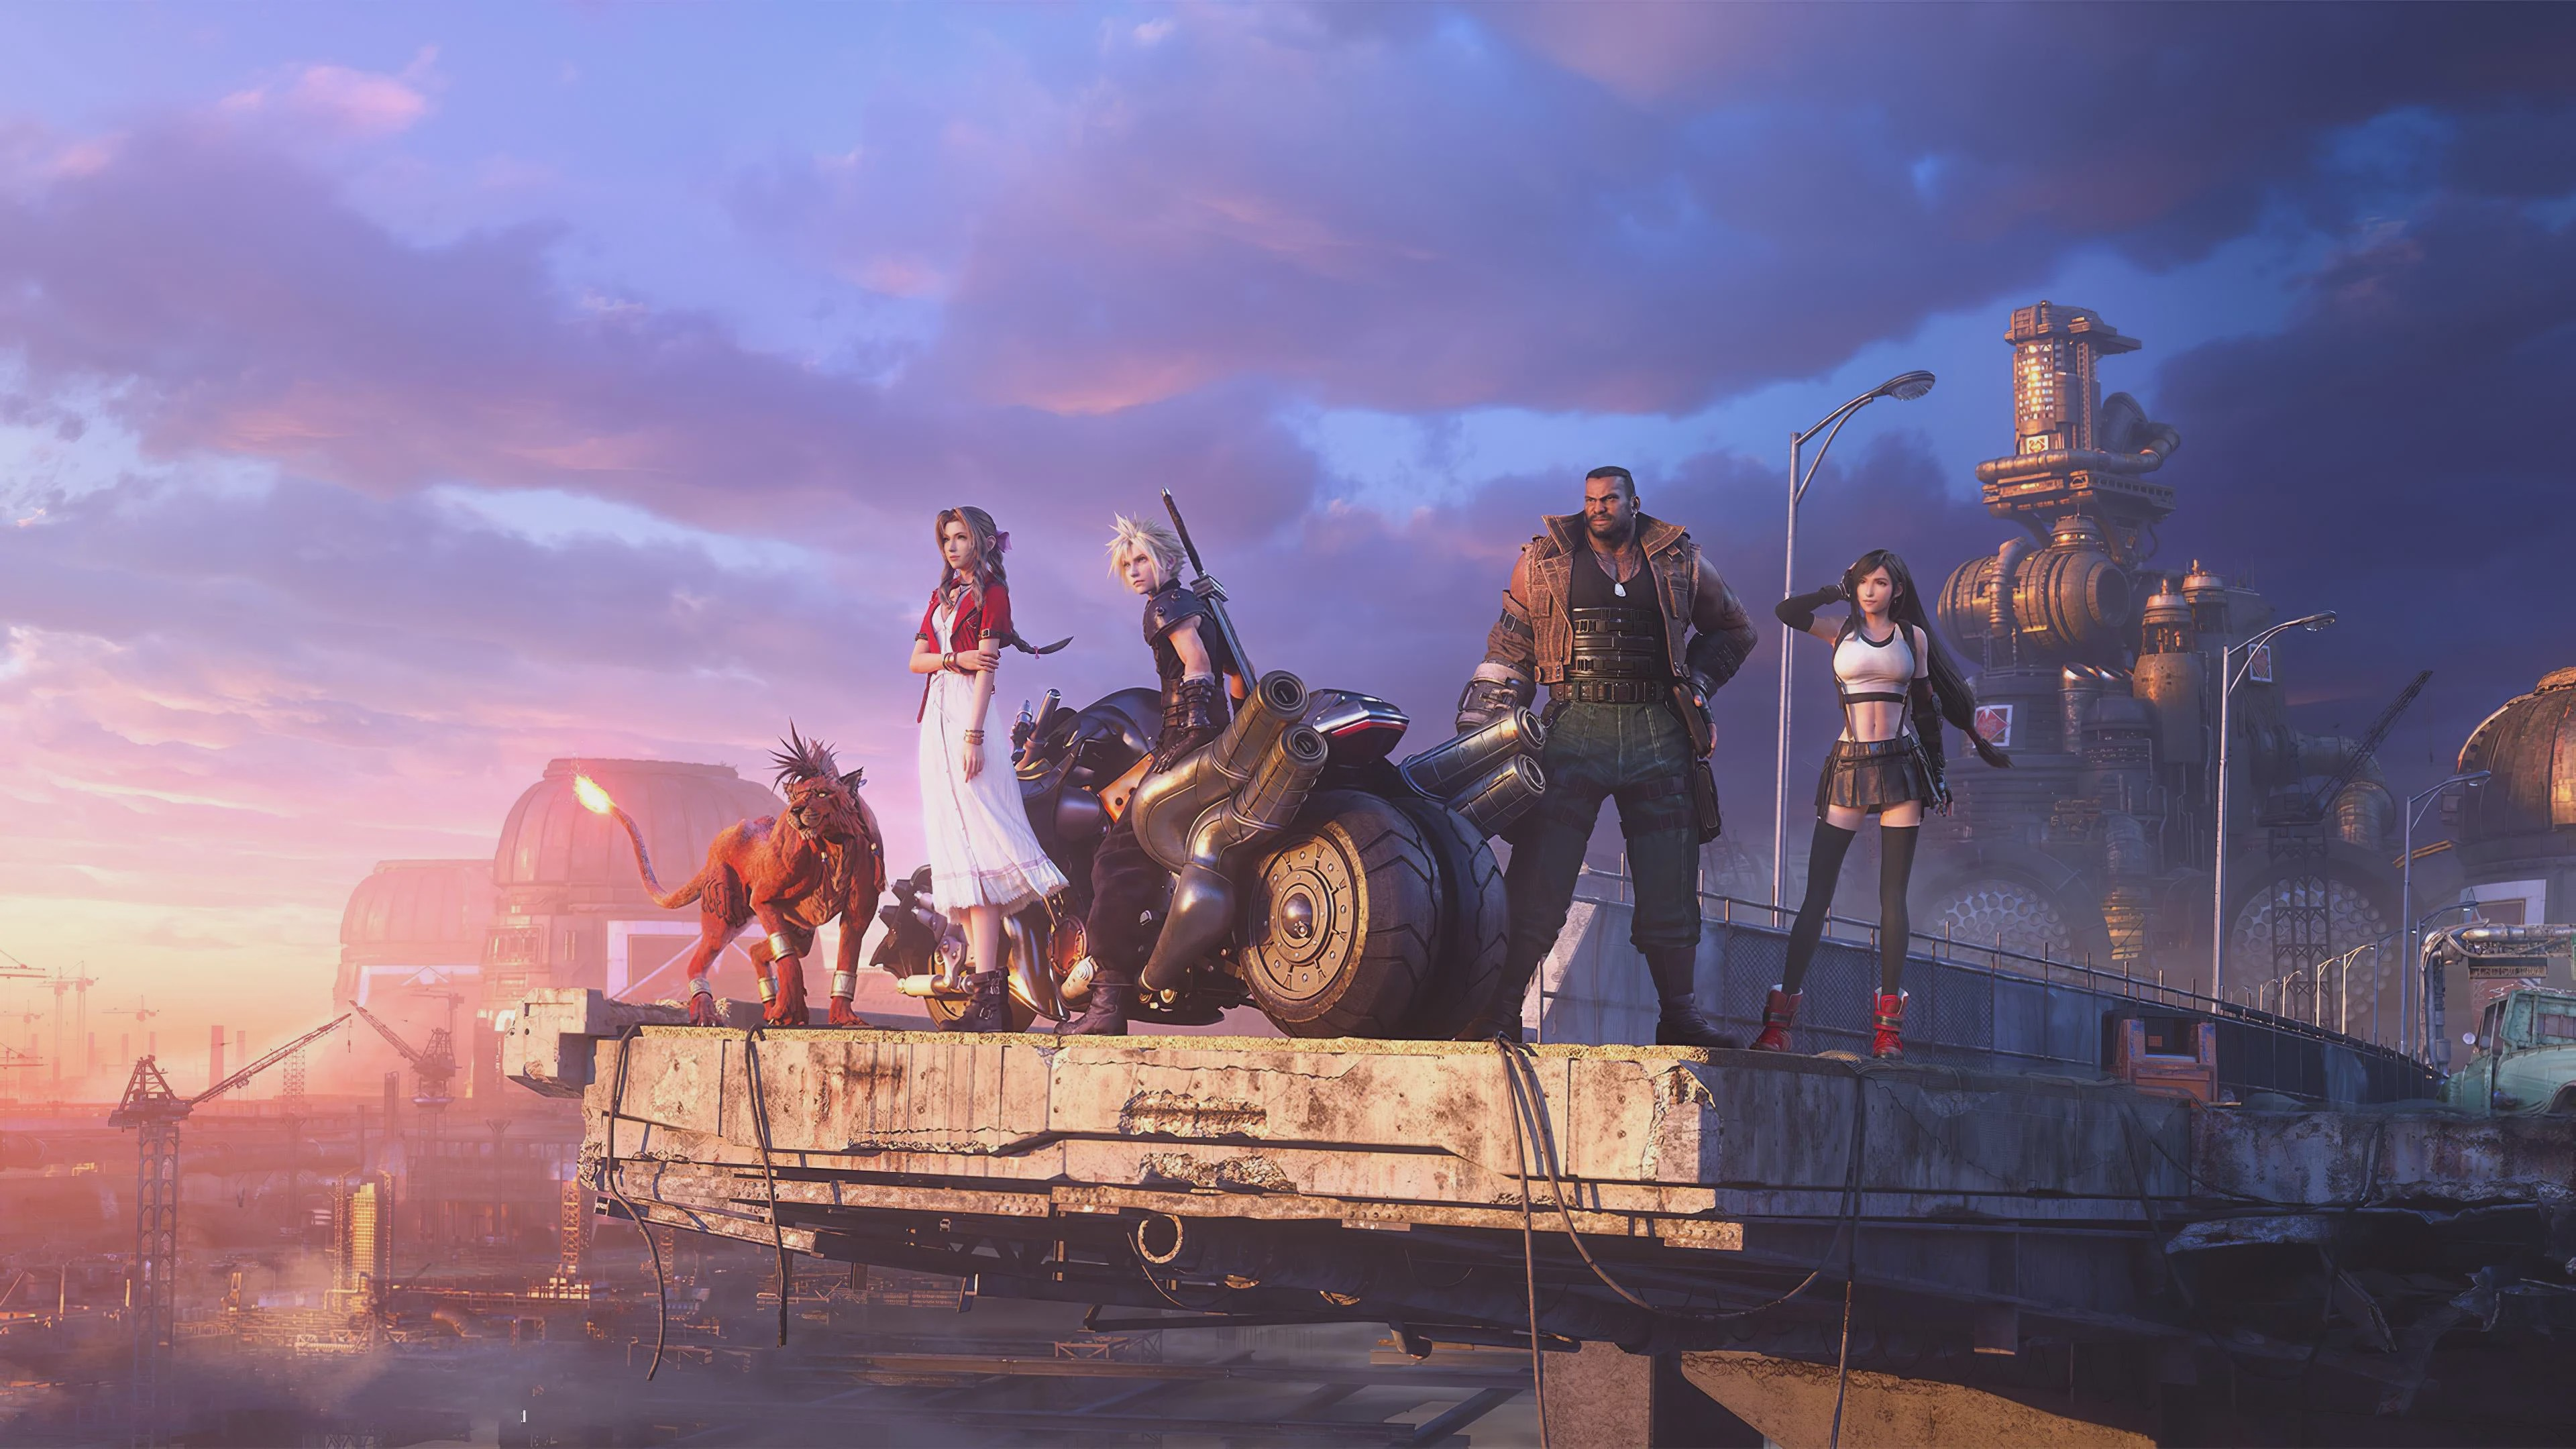 The cast of Final Fantasy VII remake standing in the city outskirts with a motorcycle.